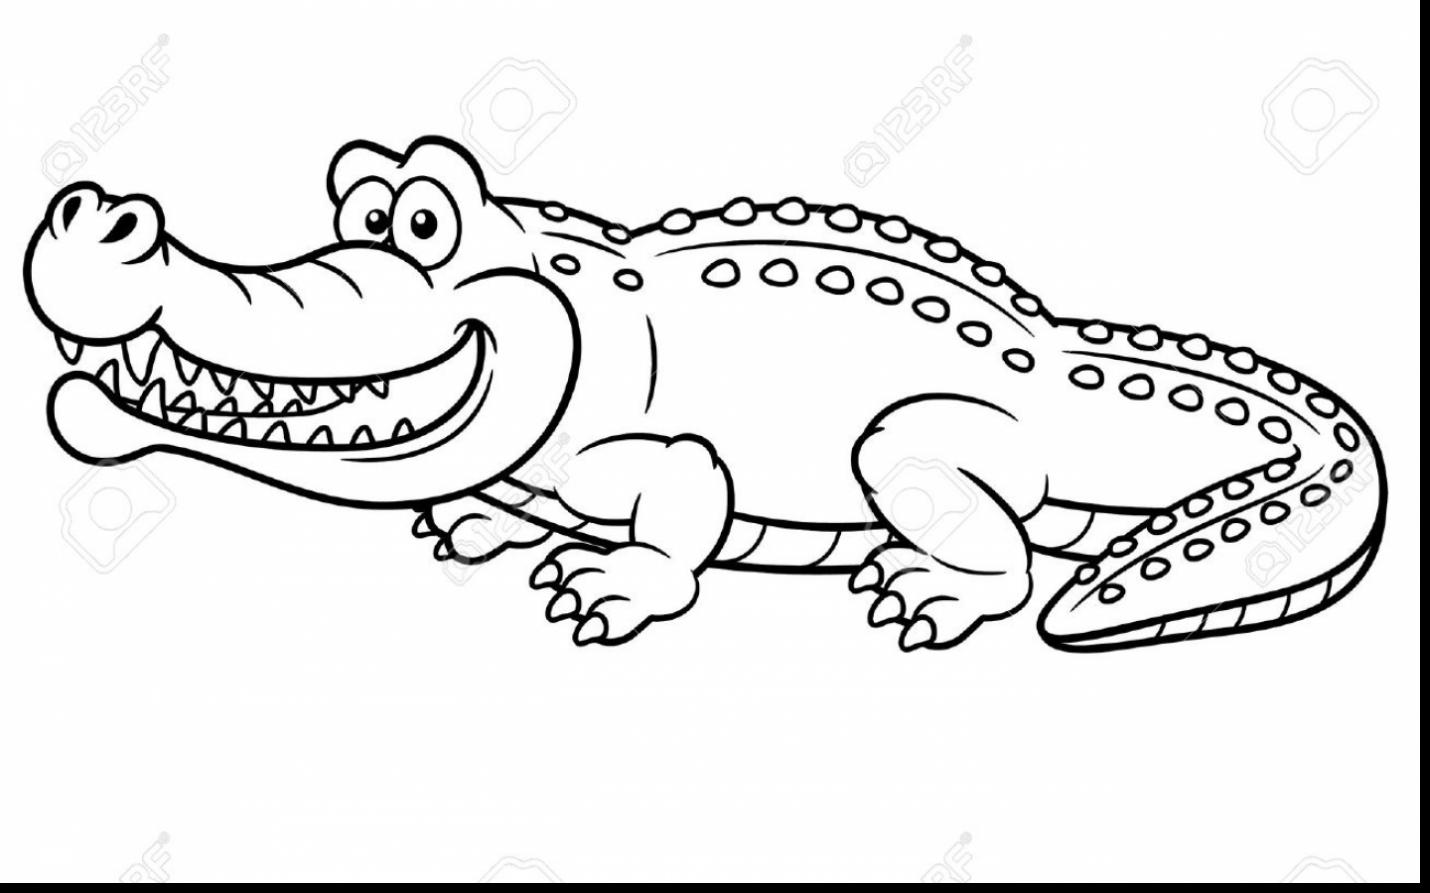 Baby Crocodile Drawing At Getdrawings Com Free For Personal Use